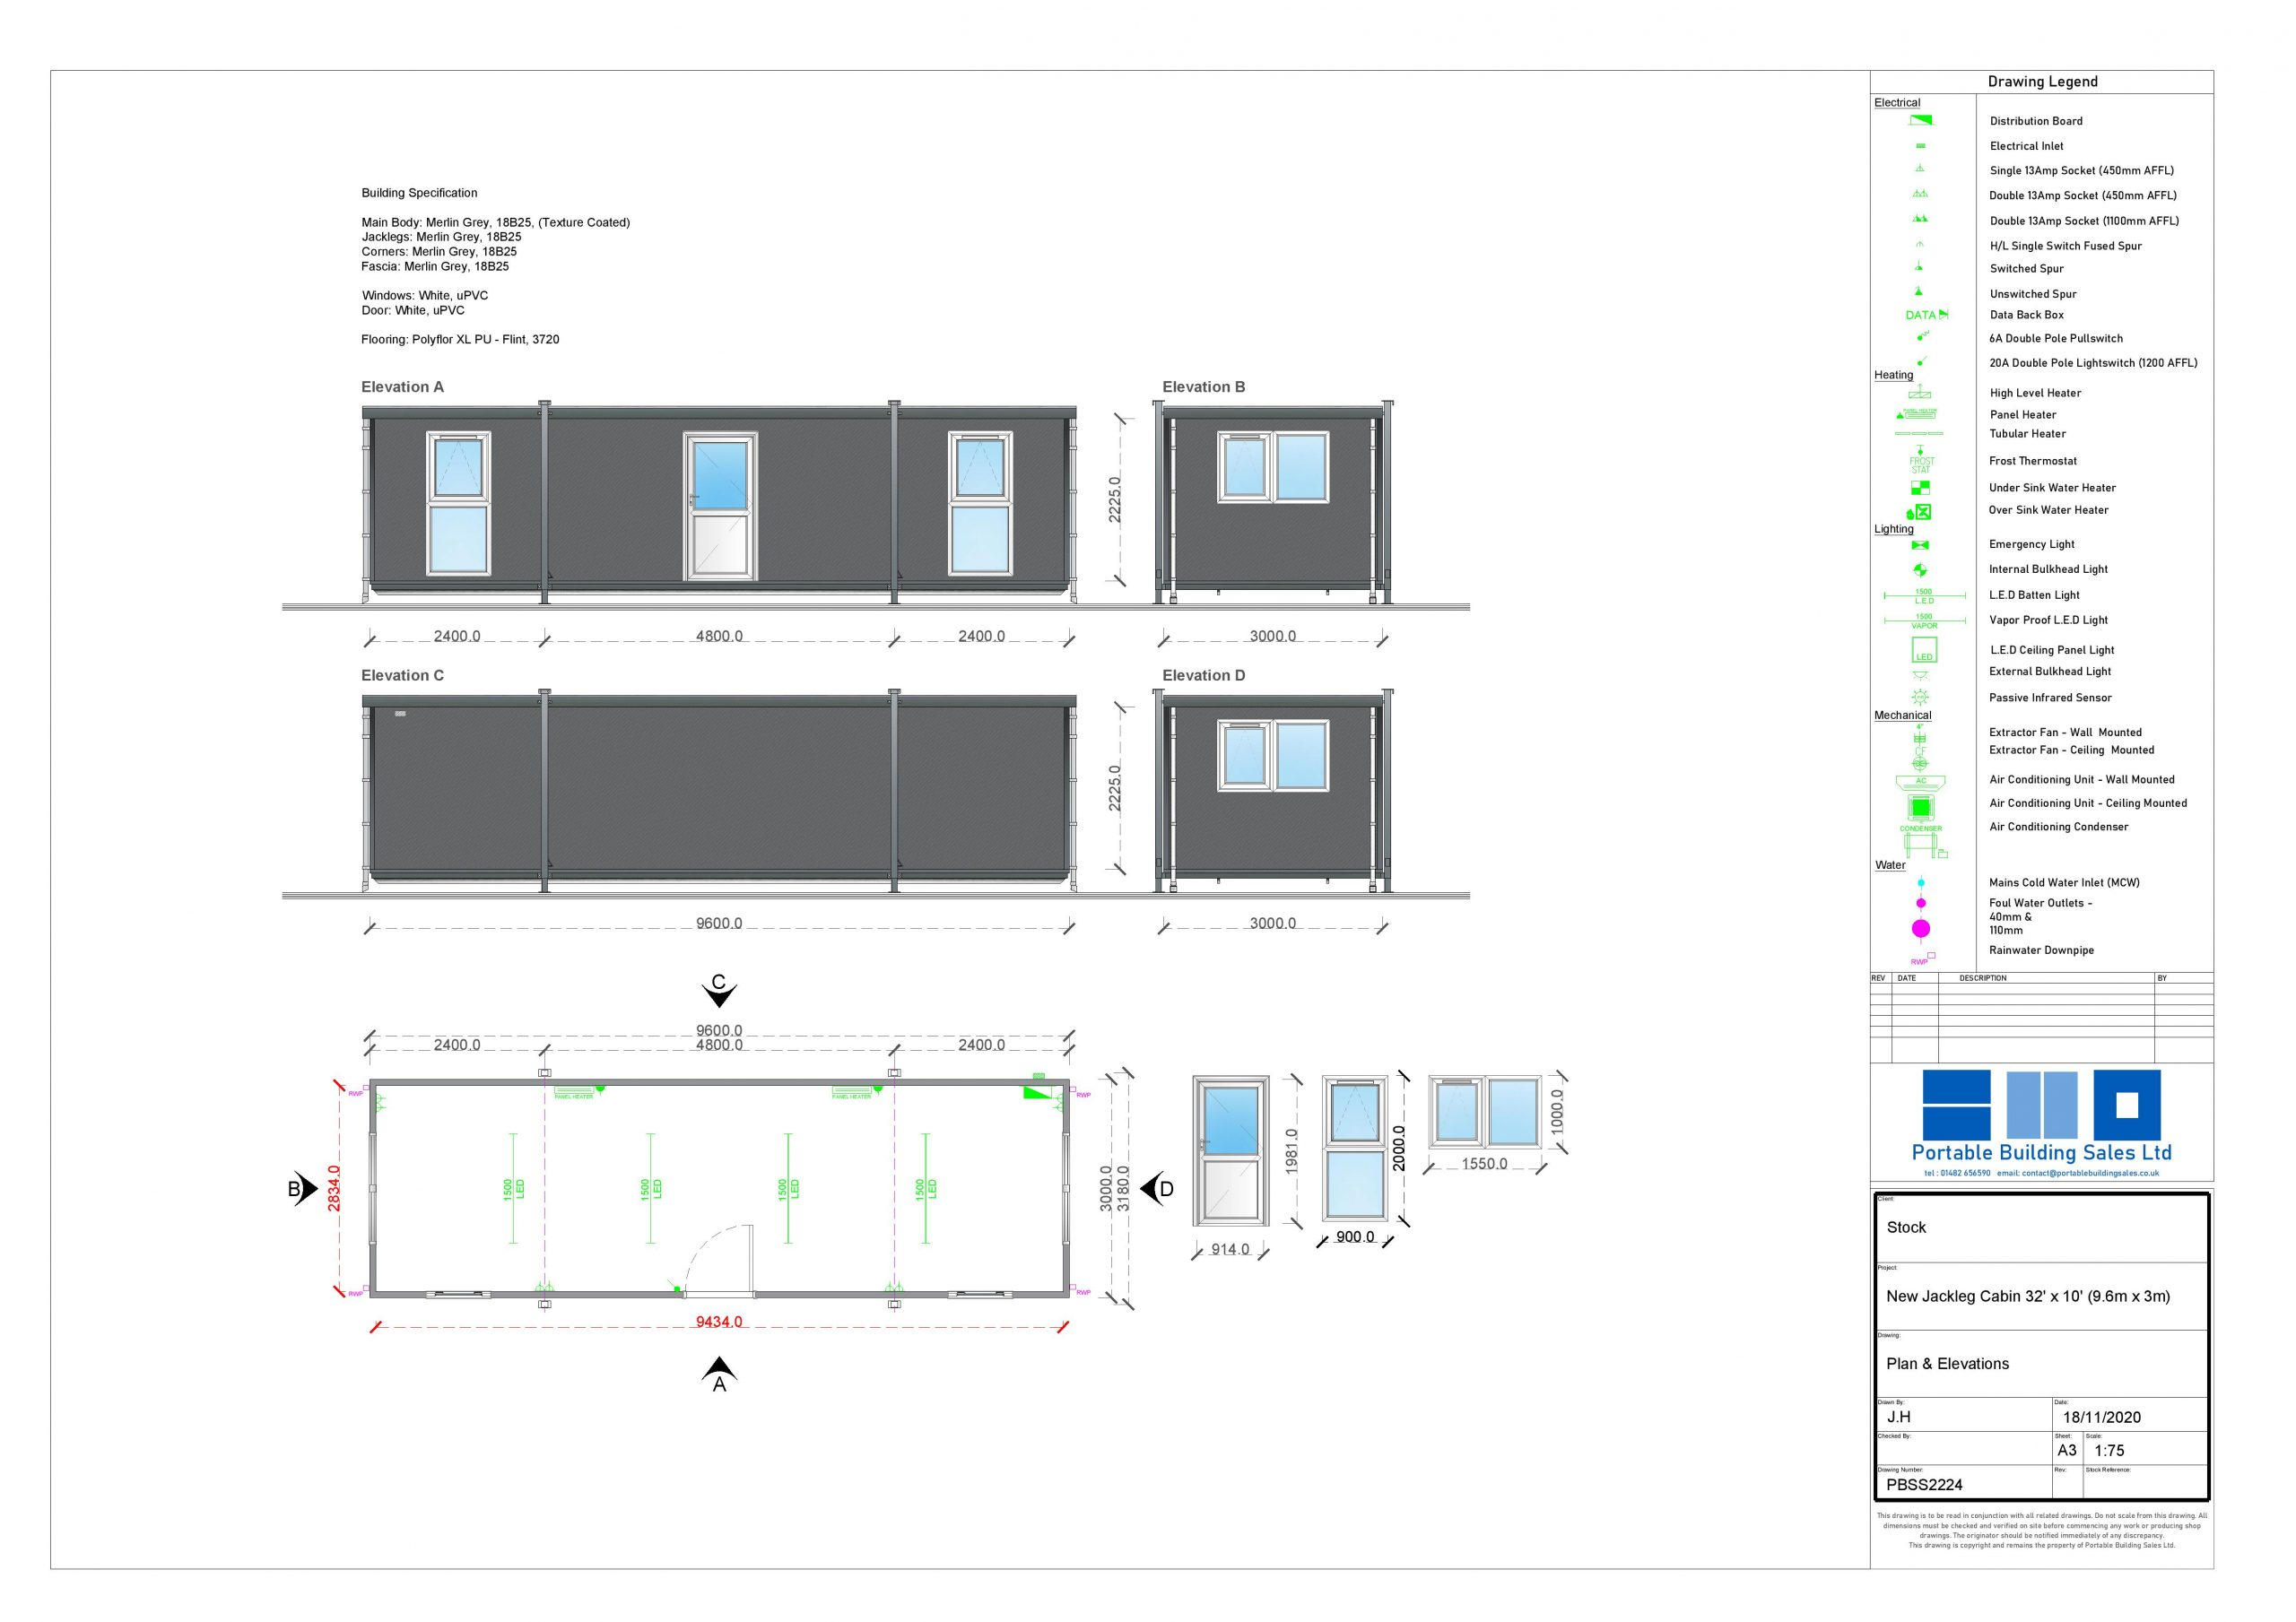 Stock 32' x 10' Portable Building Drawing Image